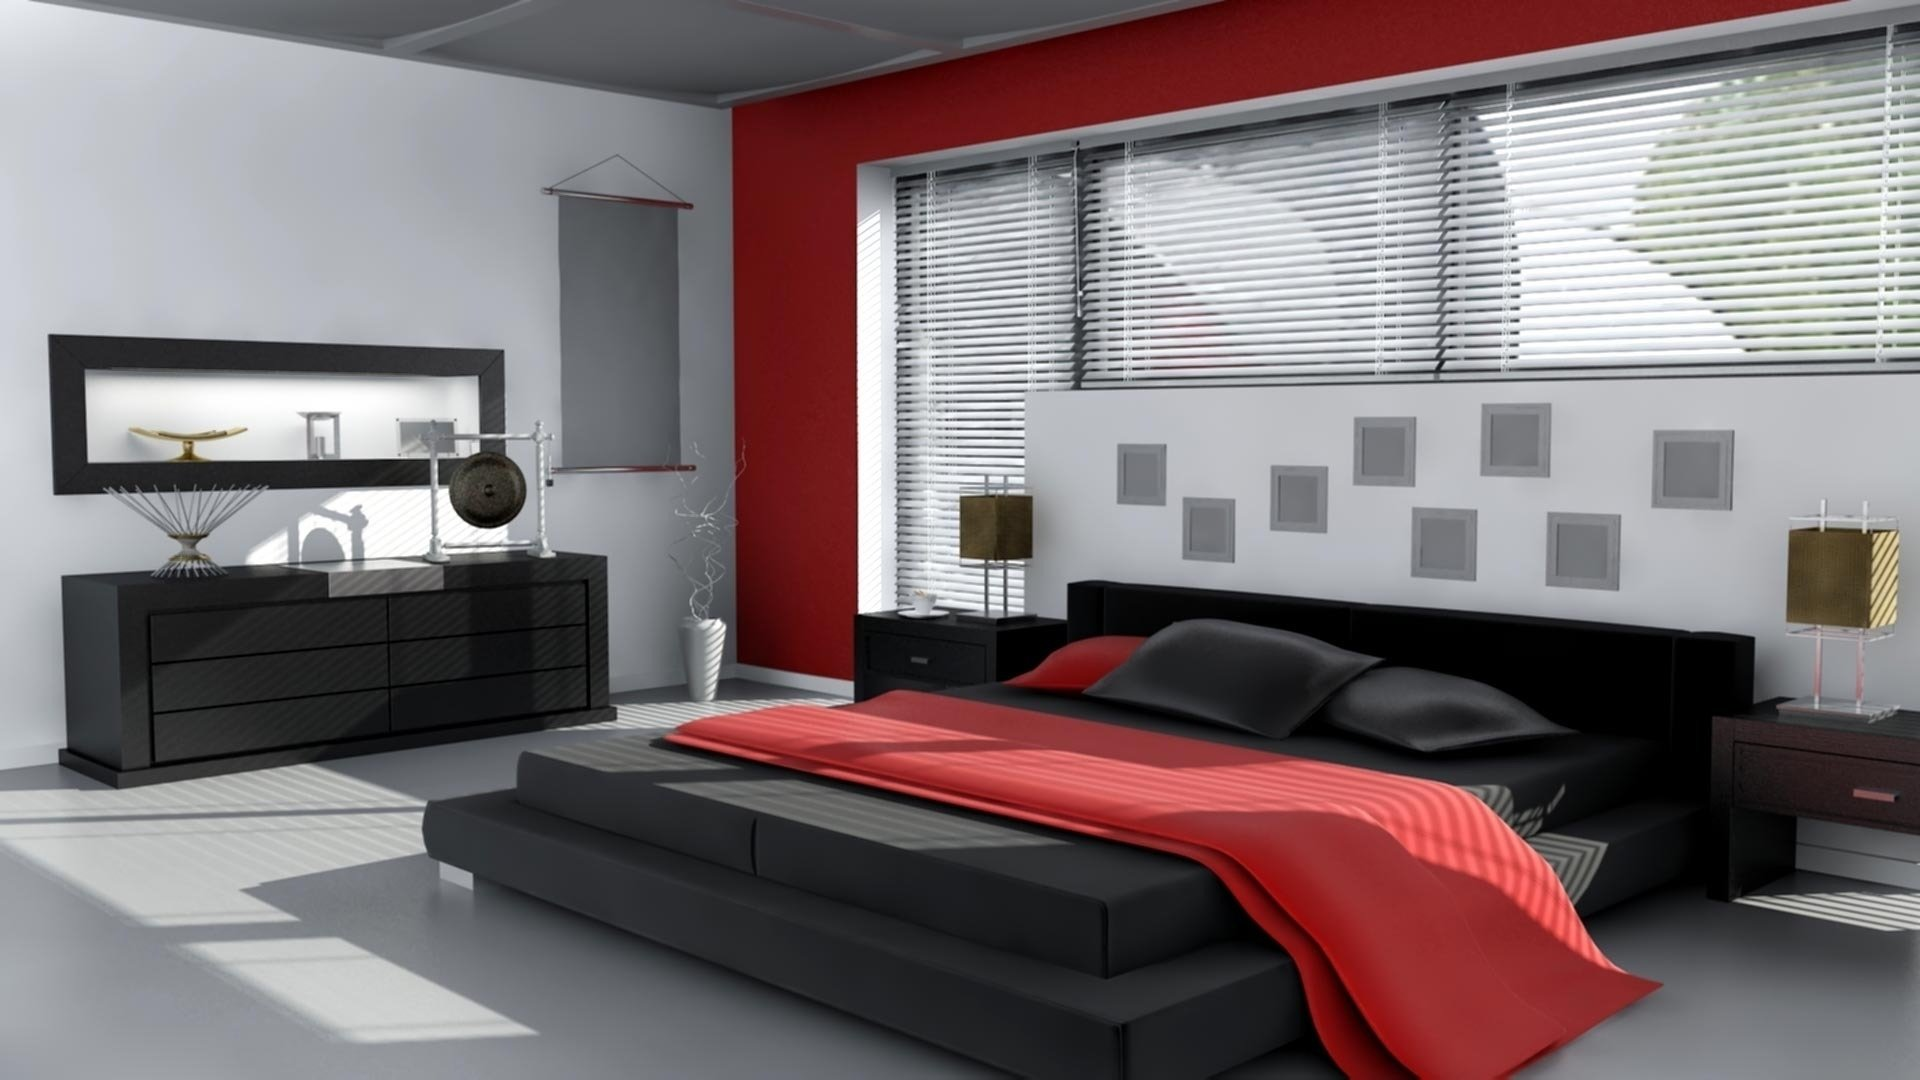 10 Lovely Red And Black Bedroom Ideas black white and red decorating ideas for bedrooms e280a2 bedroom ideas 2020